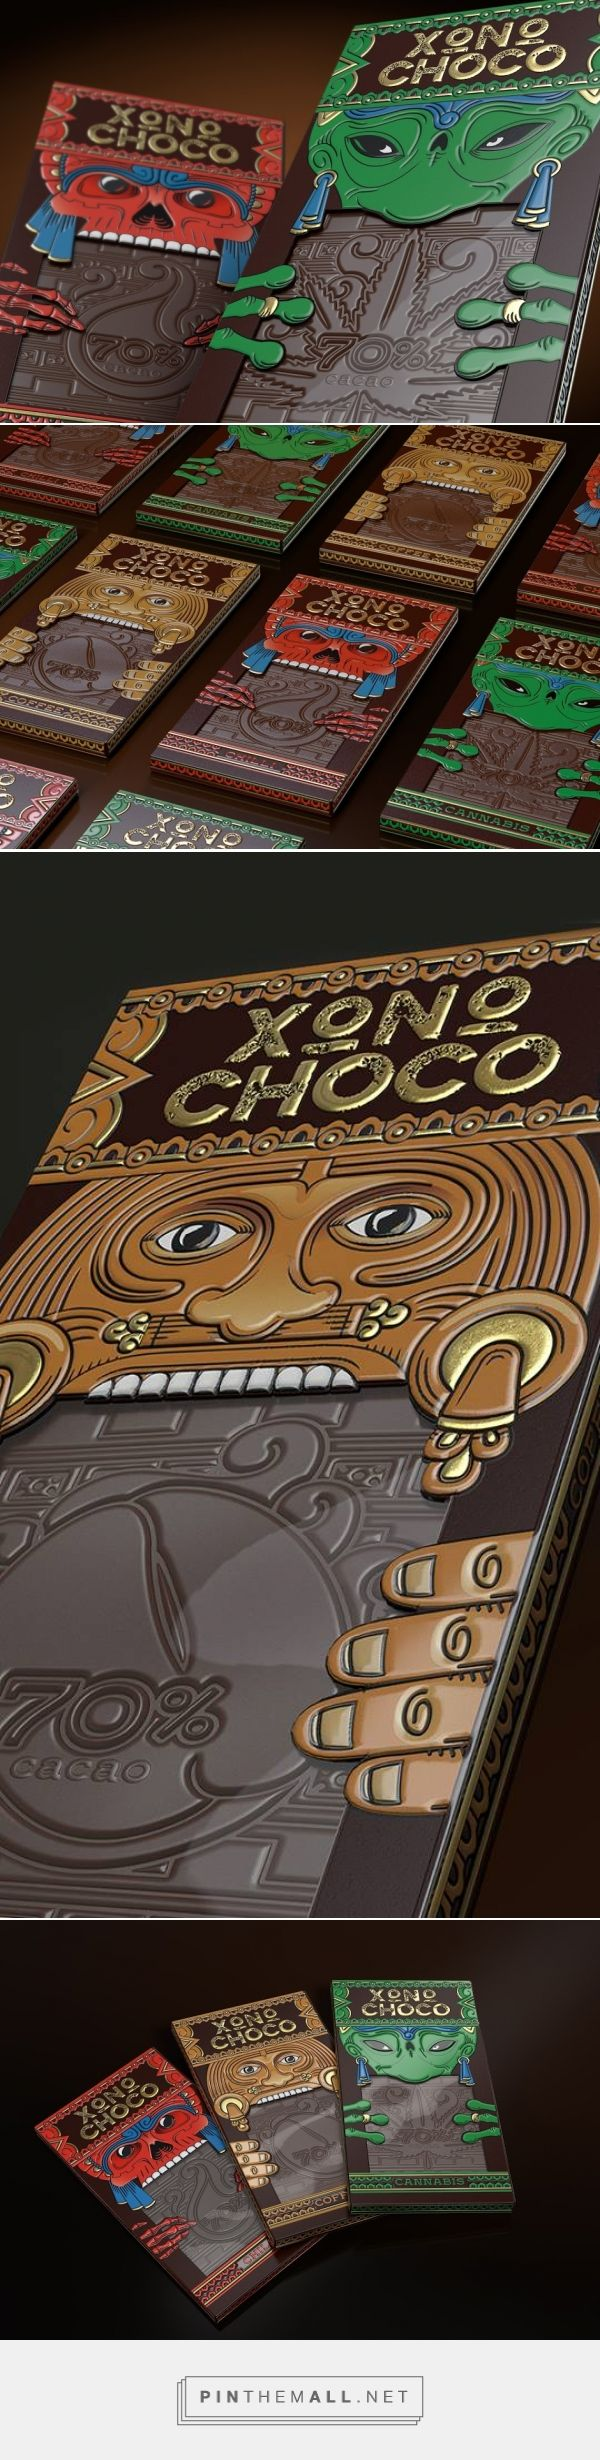 Xoconochco ‪Chocolate‬ ‪‎concept‬ ‪‎packaging‬ designed by Brand Brothers Russia (‪Russia‬) - http://www.packagingoftheworld.com/2016/03/xoconochco-chocolate-concept.html